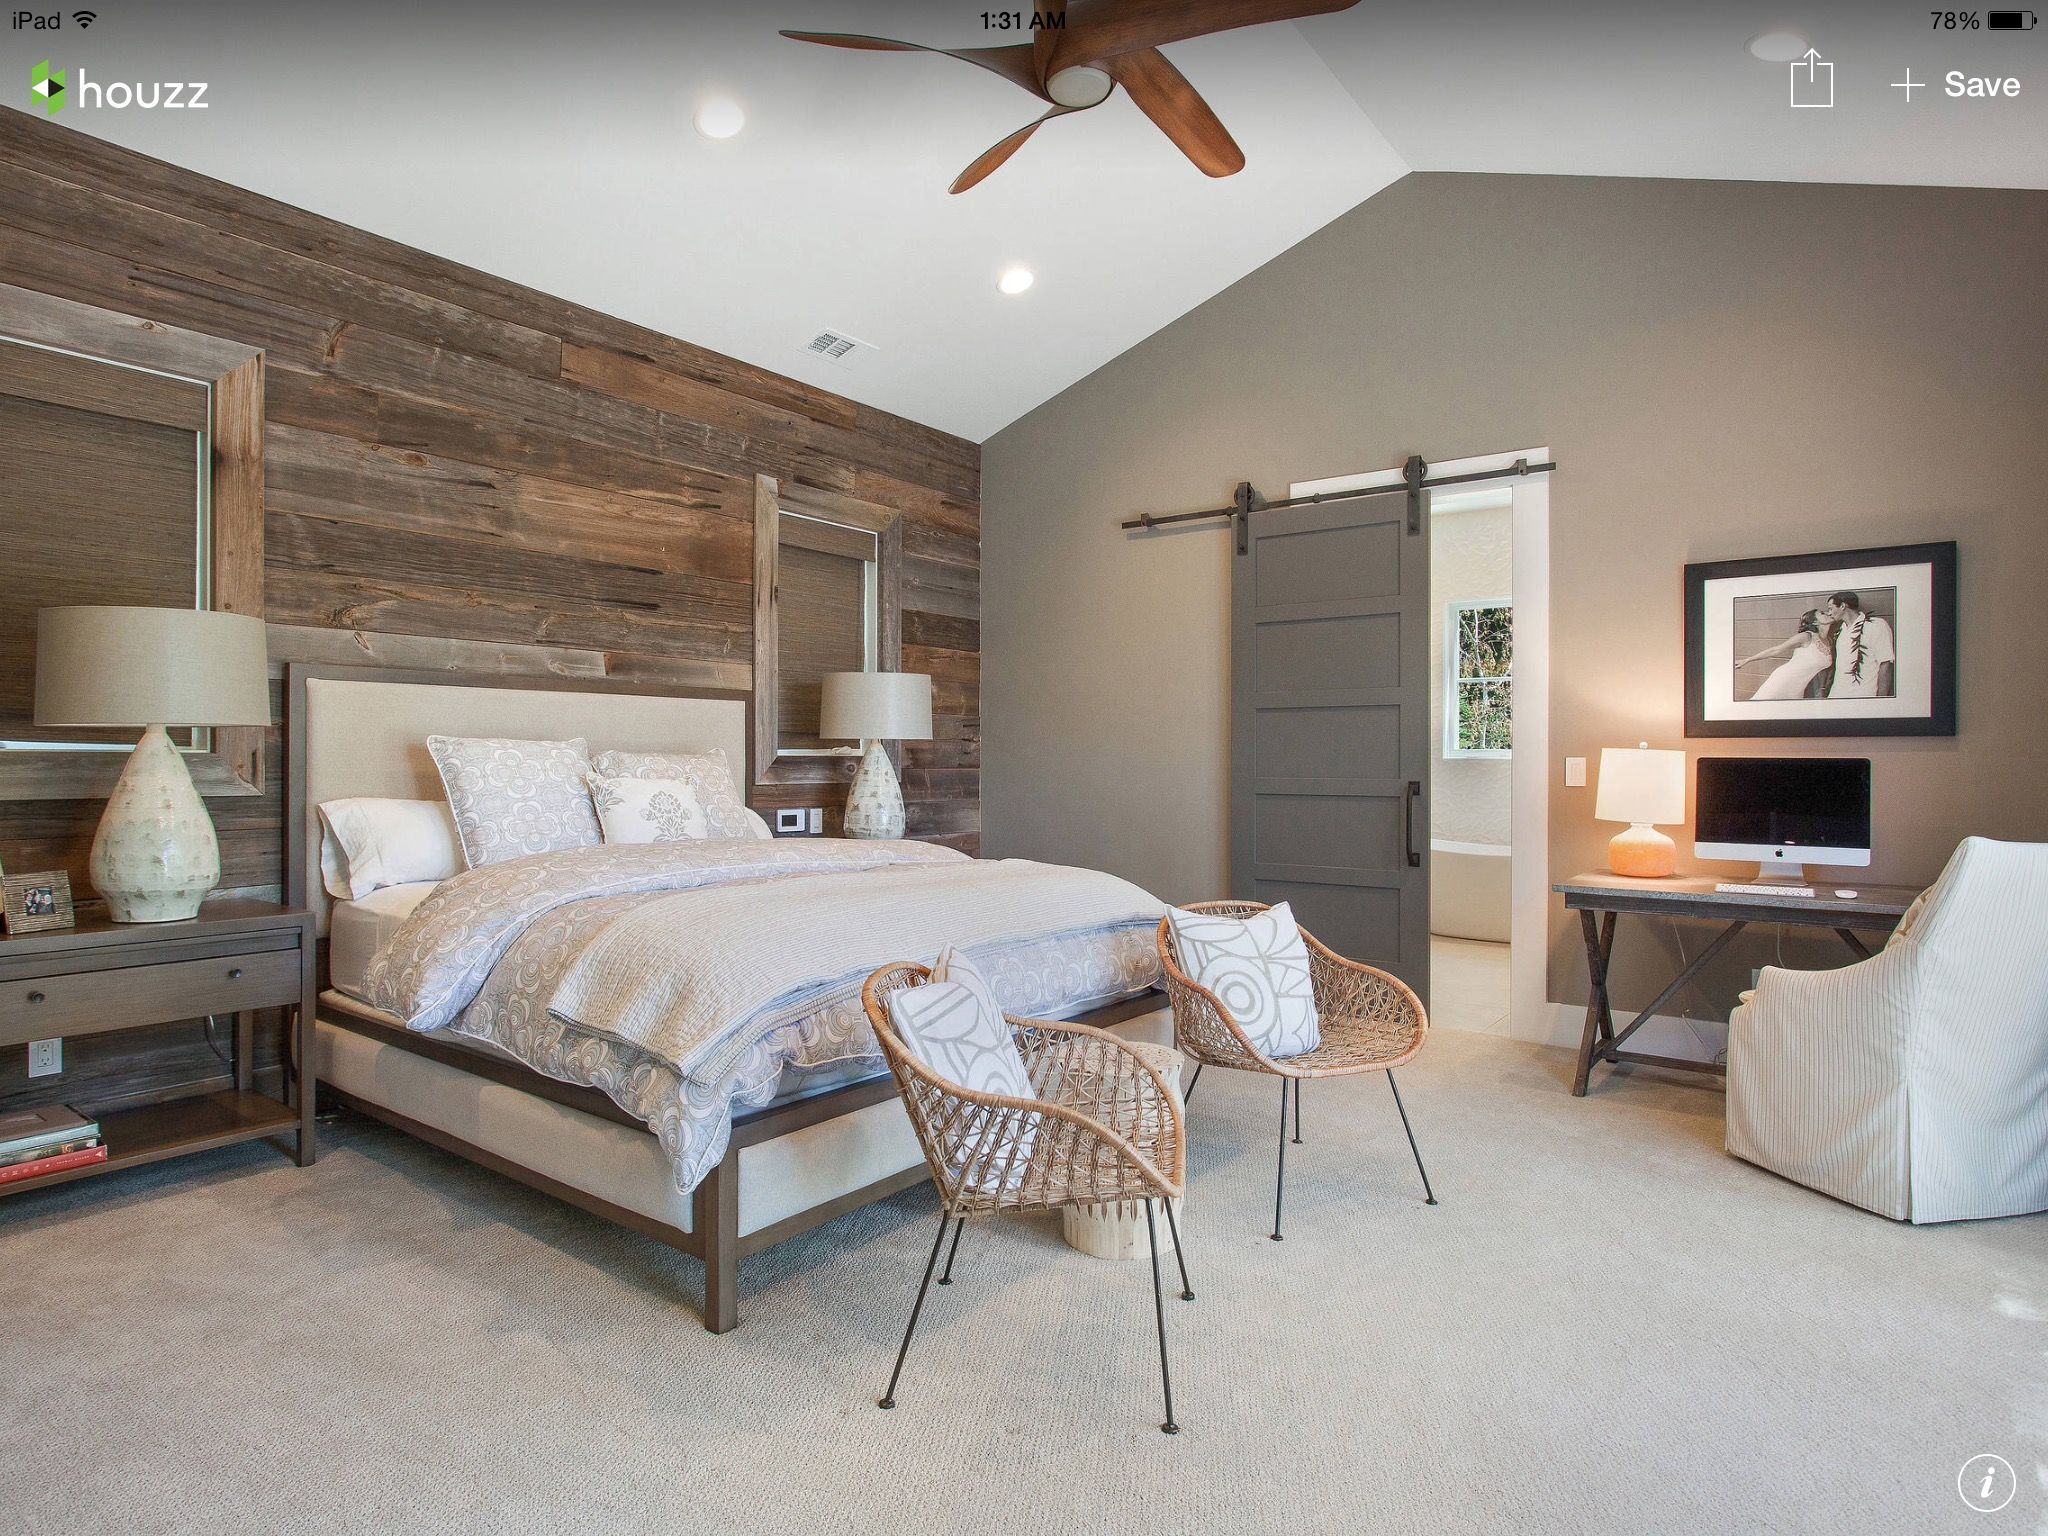 best 20 accent wall bedroom ideas on pinterest accent walls best 20 accent wall bedroom ideas on pinterest accent walls wood stick decor and master bedroom wood wall